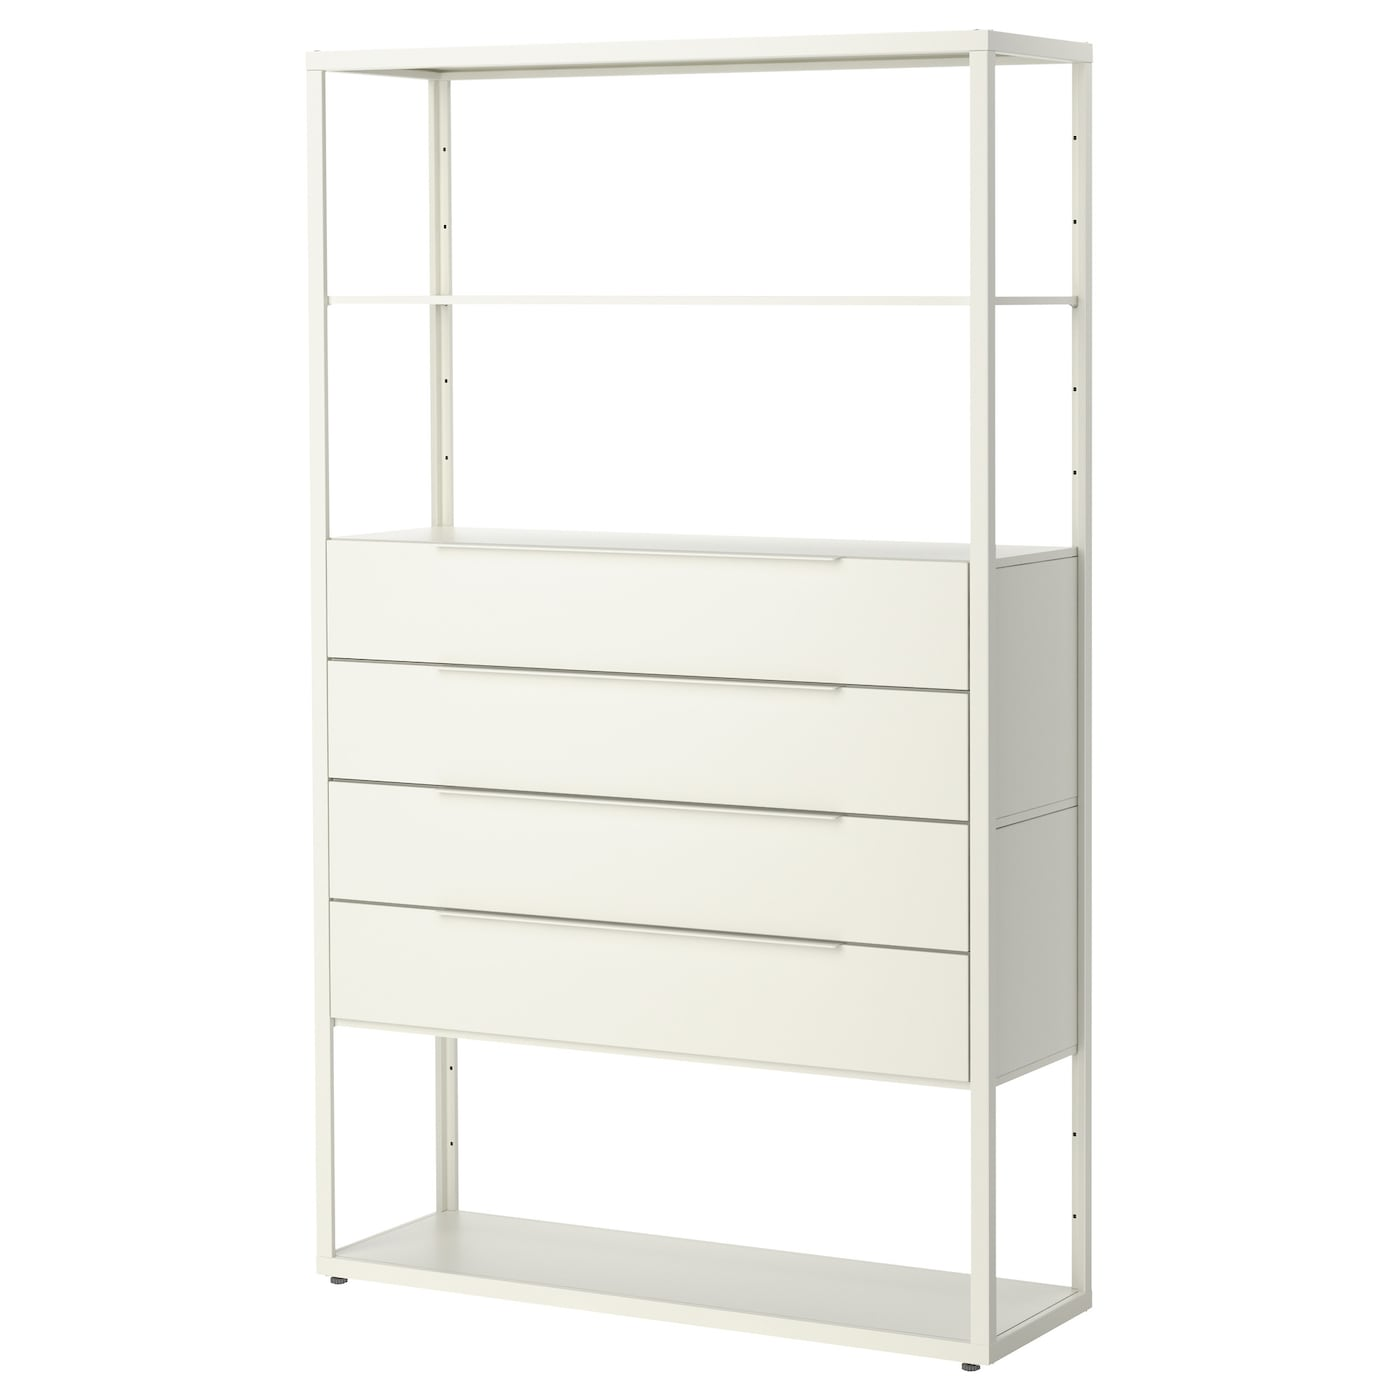 fj lkinge shelving unit with drawers white 118x193 cm ikea. Black Bedroom Furniture Sets. Home Design Ideas